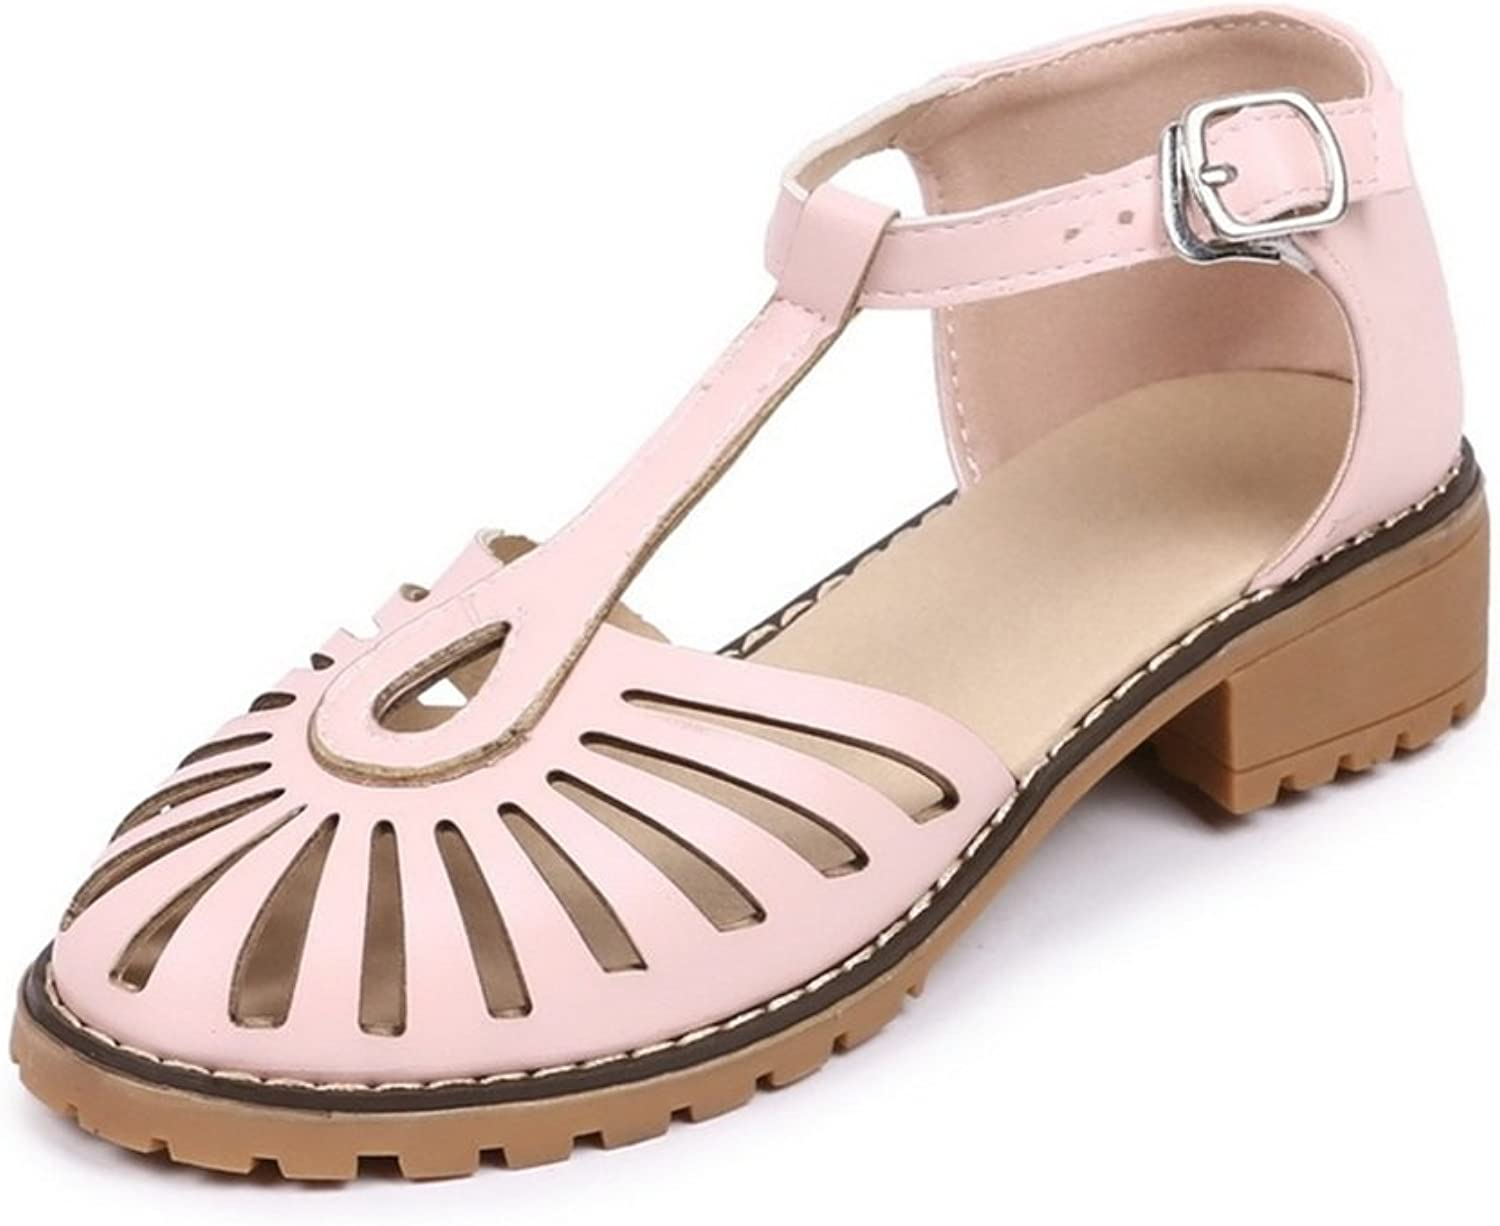 Women's shoes PU Spring Summer Sandals Low Heel Glossy Hole shoes for Casual Dress Party & Evening White Black Beige Pink